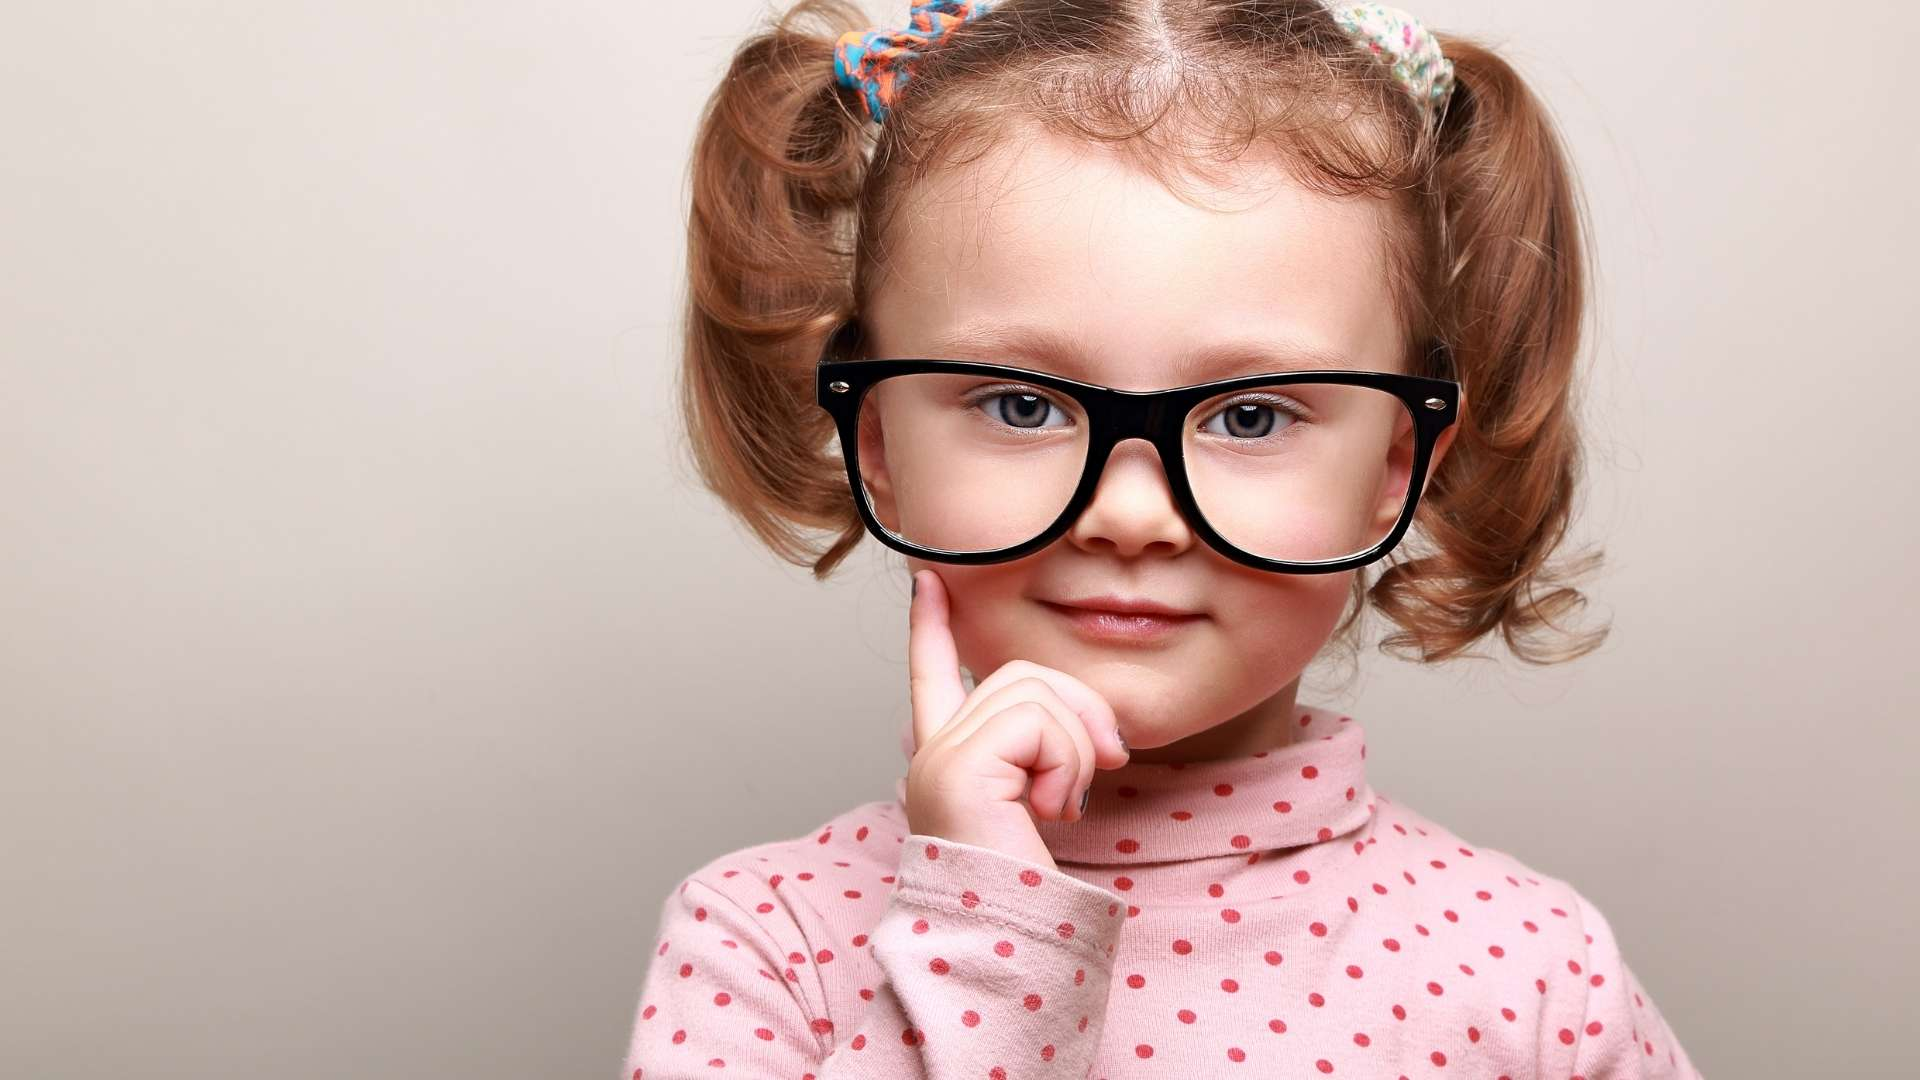 5 fun Critical Thinking Games for Kids dadgold parenting tips